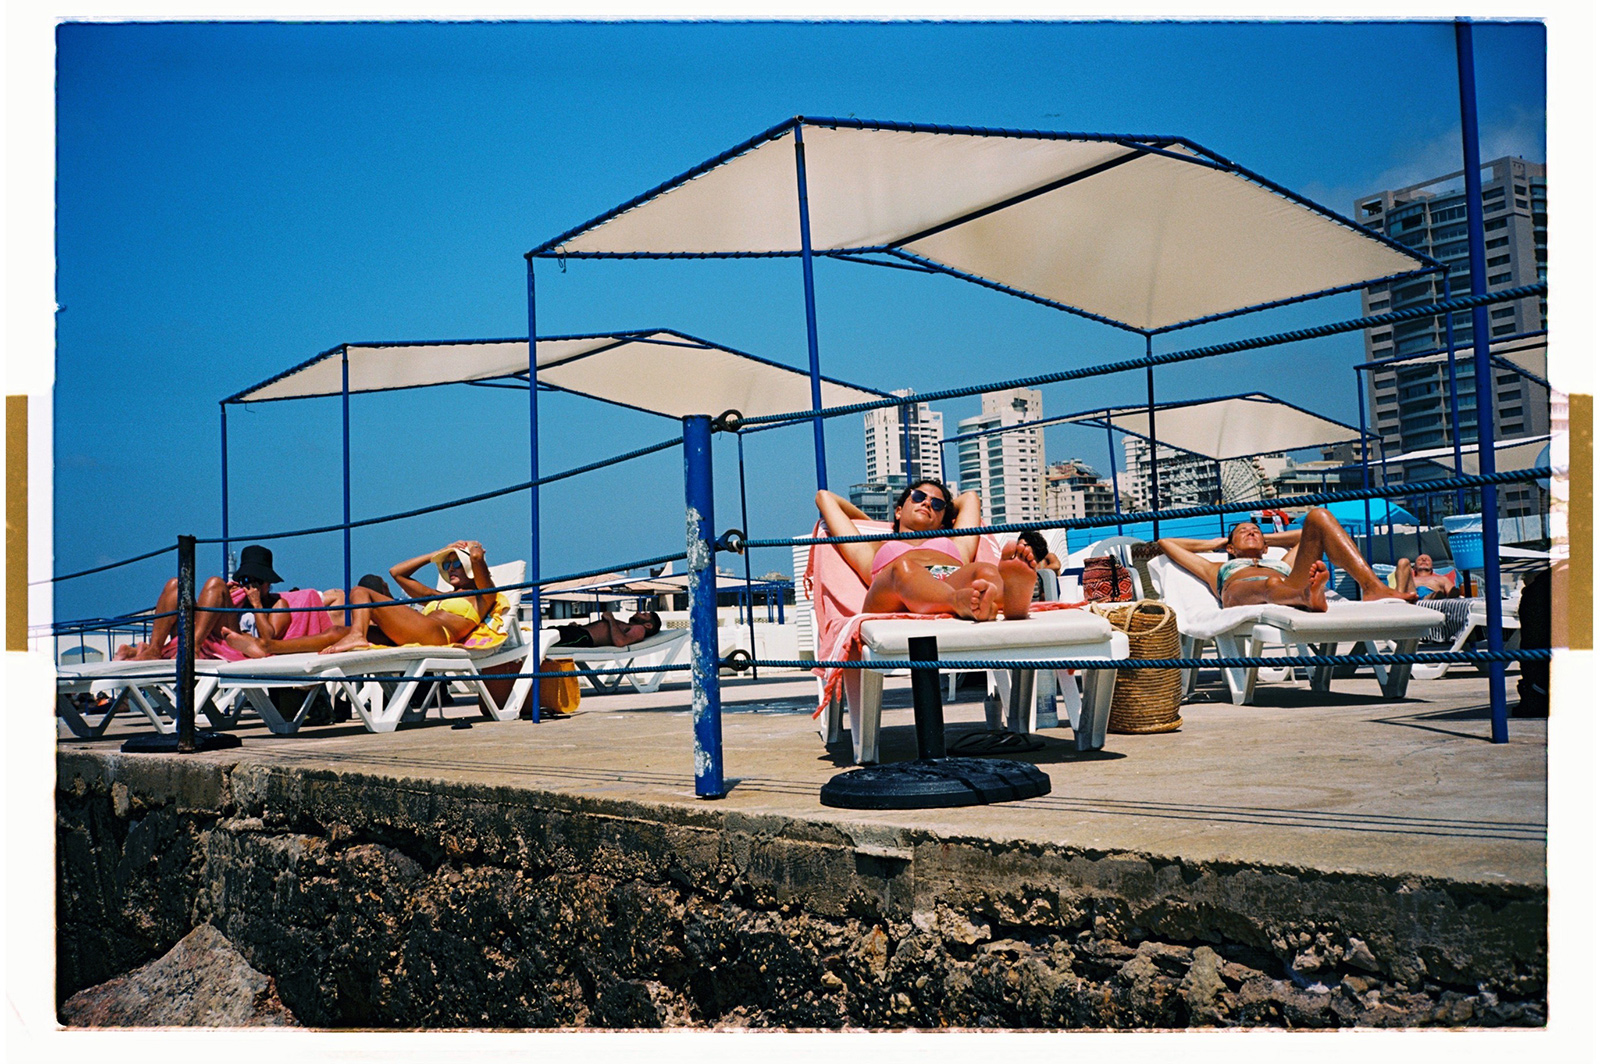 Glimpse 'old Beirut' in photographs of the city's iconic Sporting Club resort